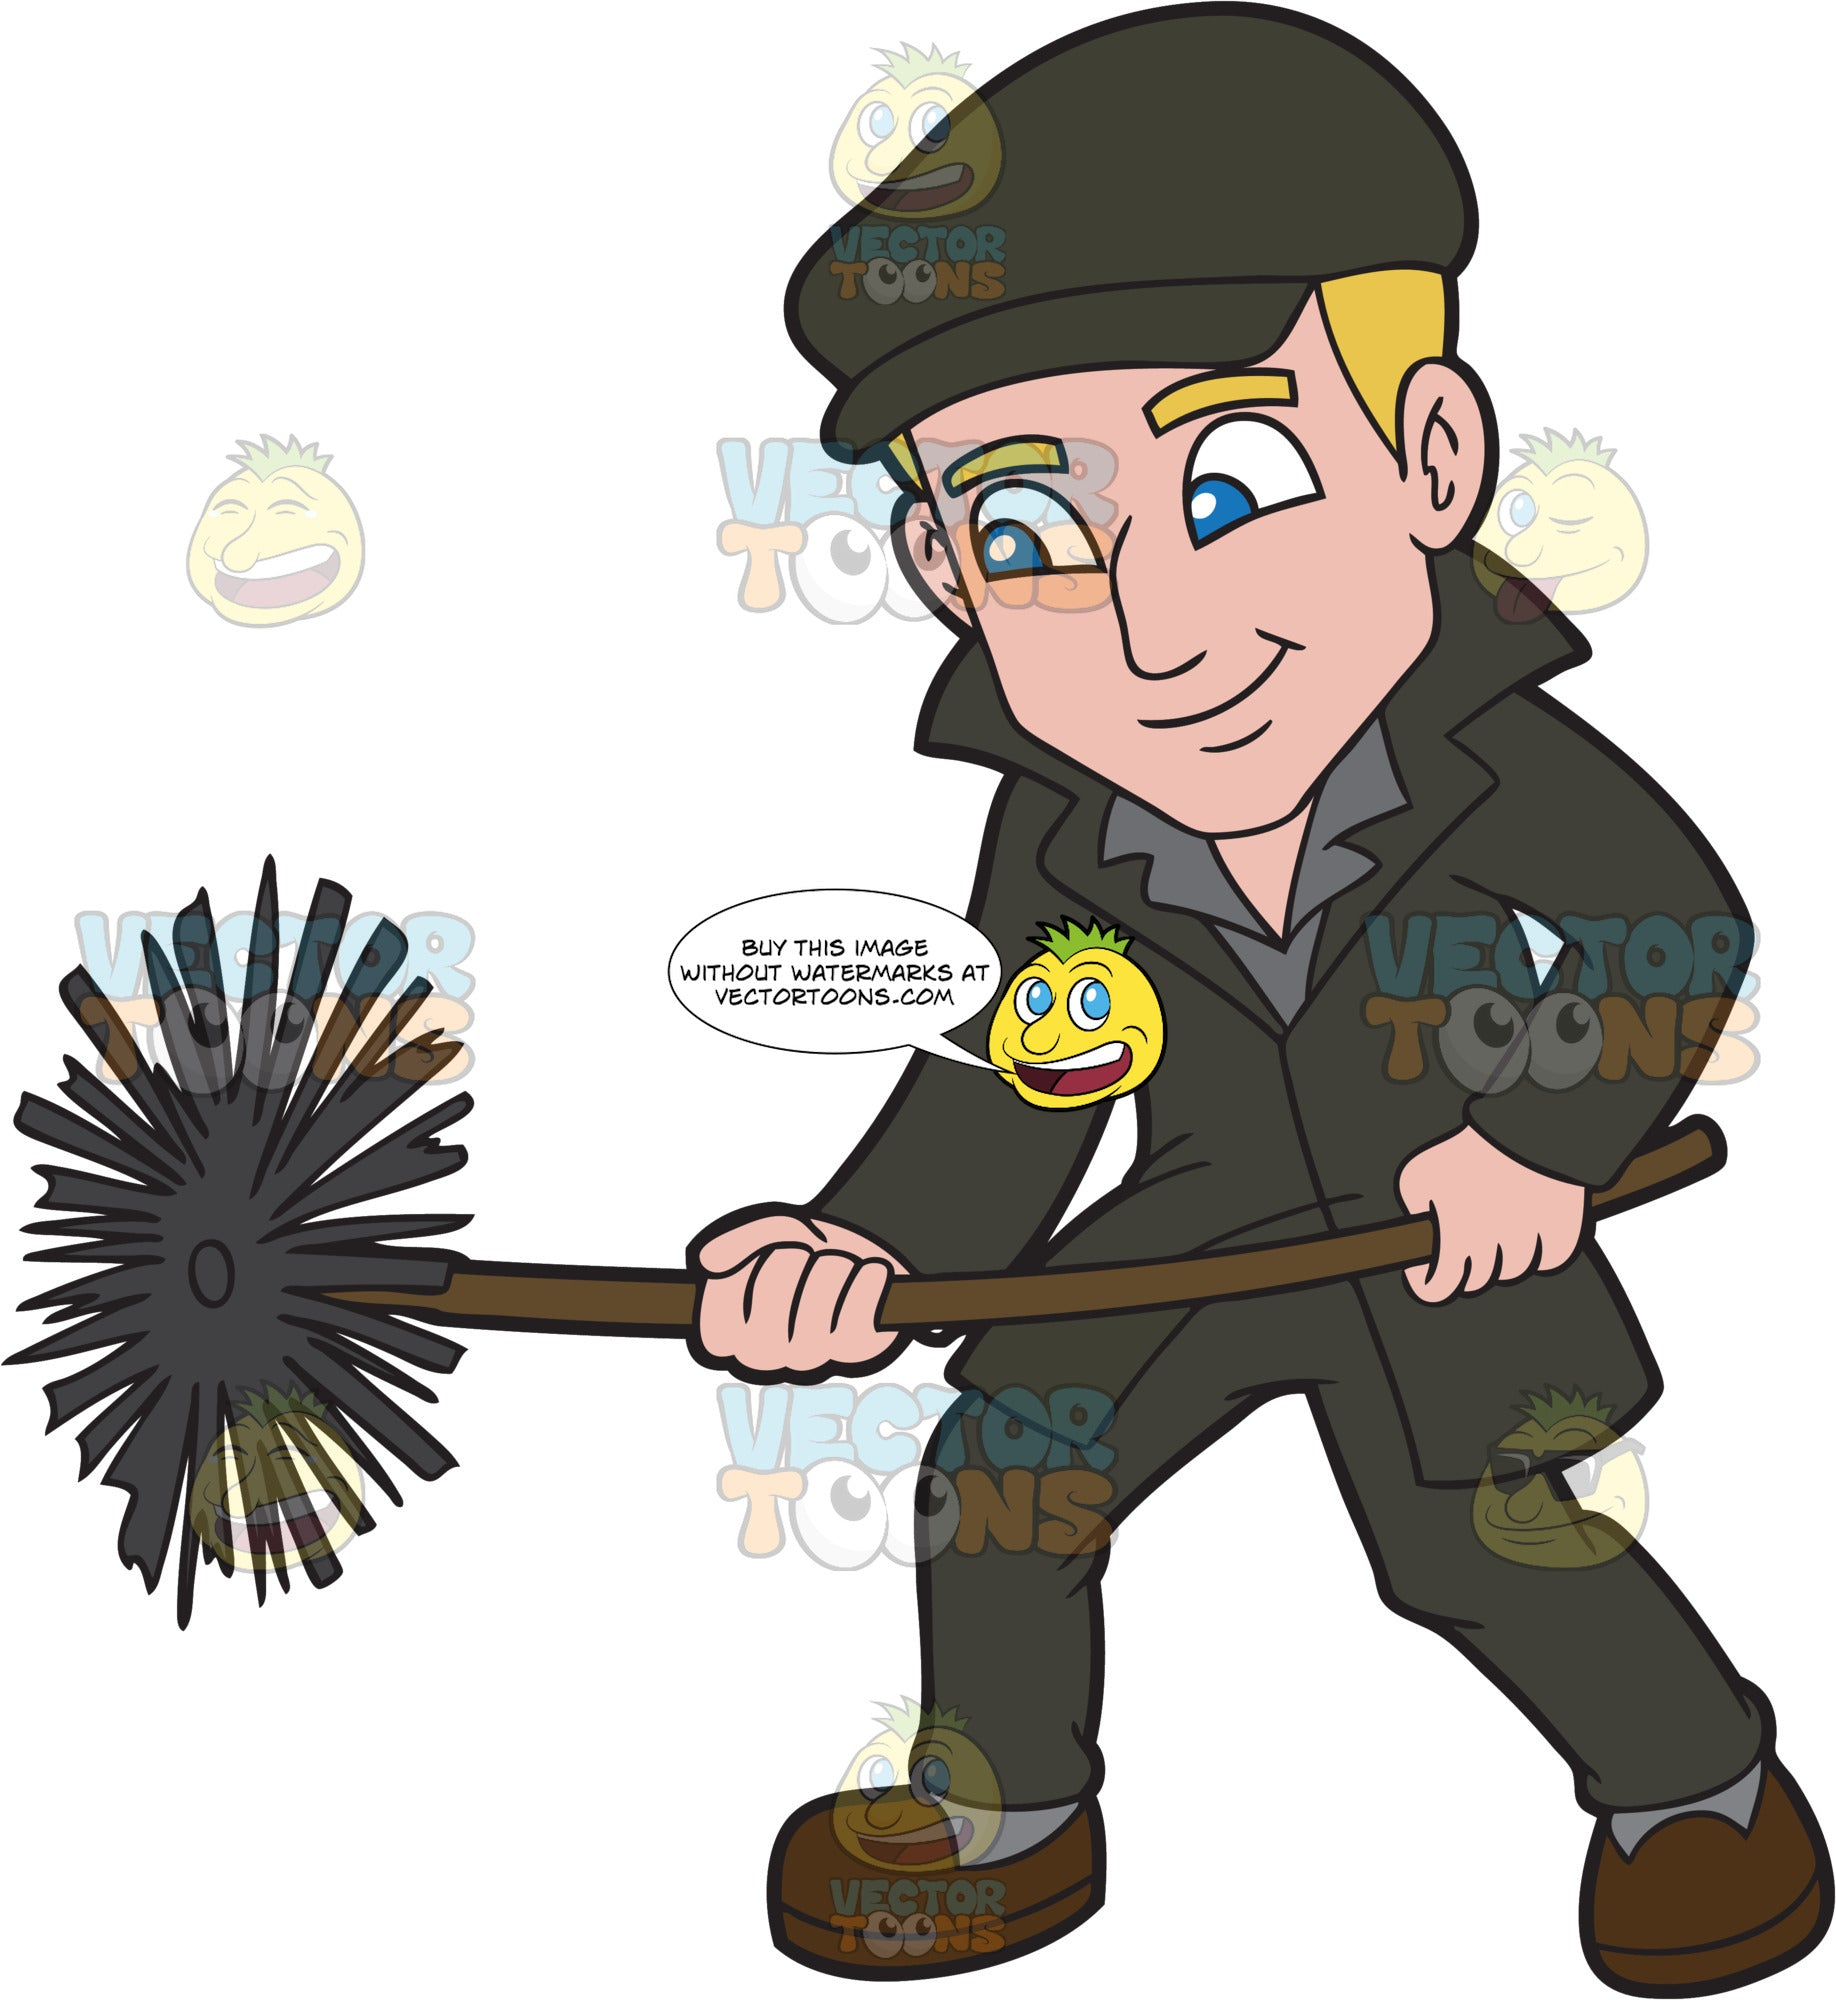 A Sleek Male Chimney Sweep